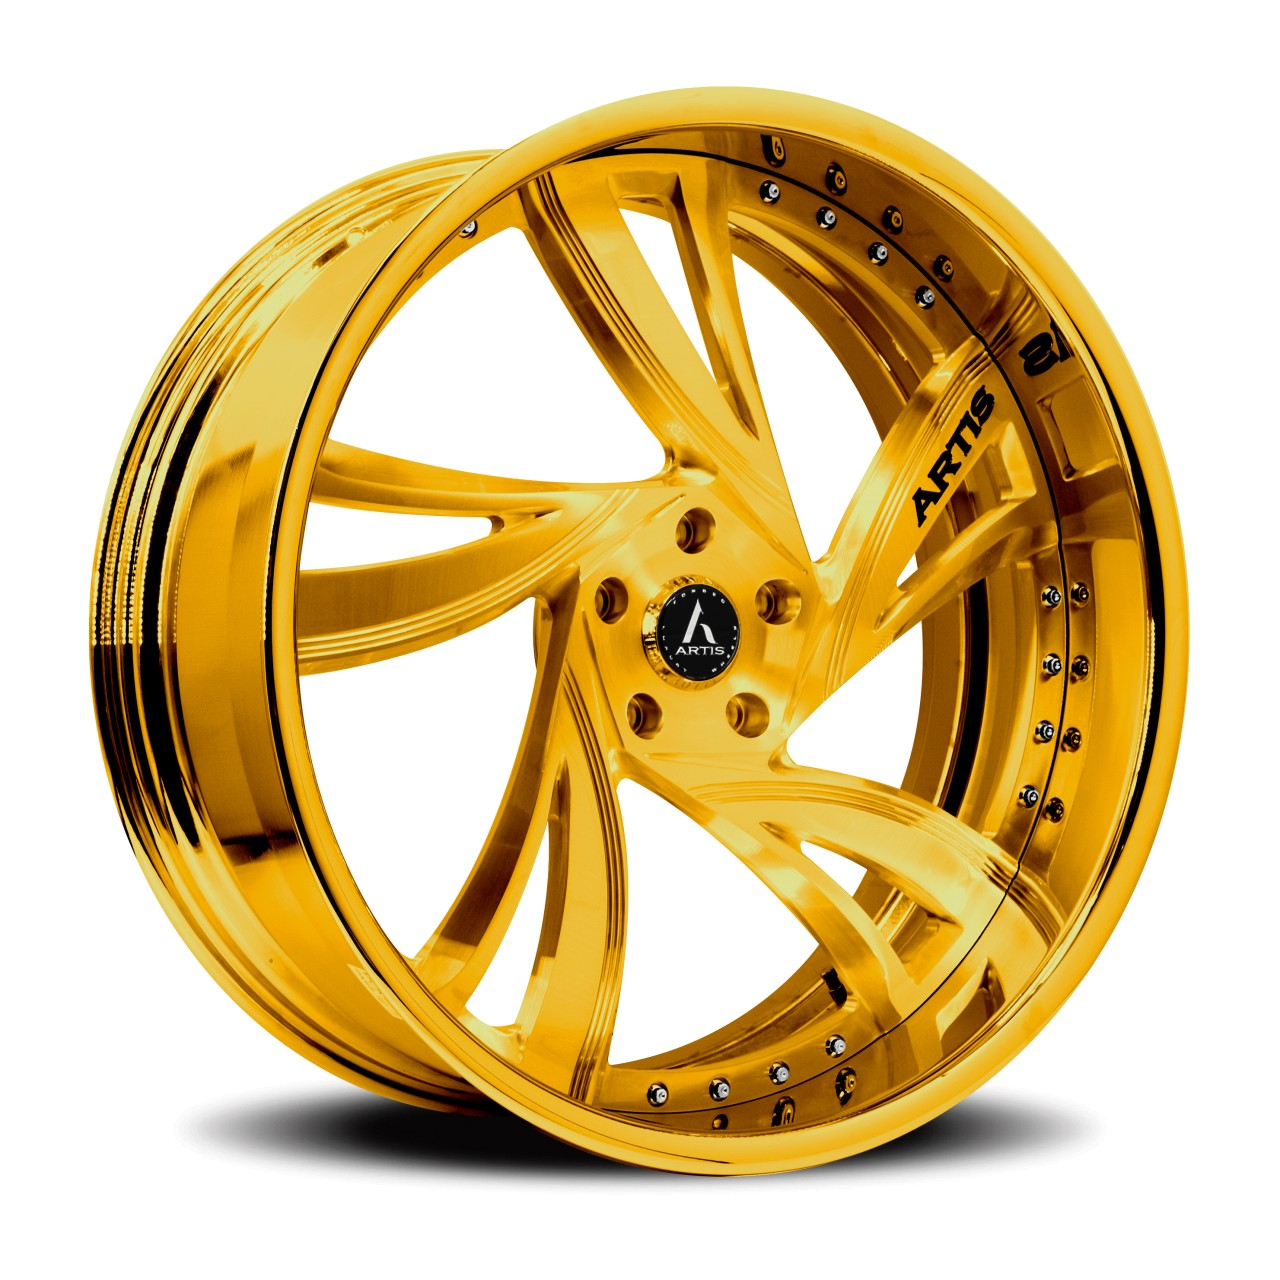 Artis Forged Kingston wheel with Gold finish